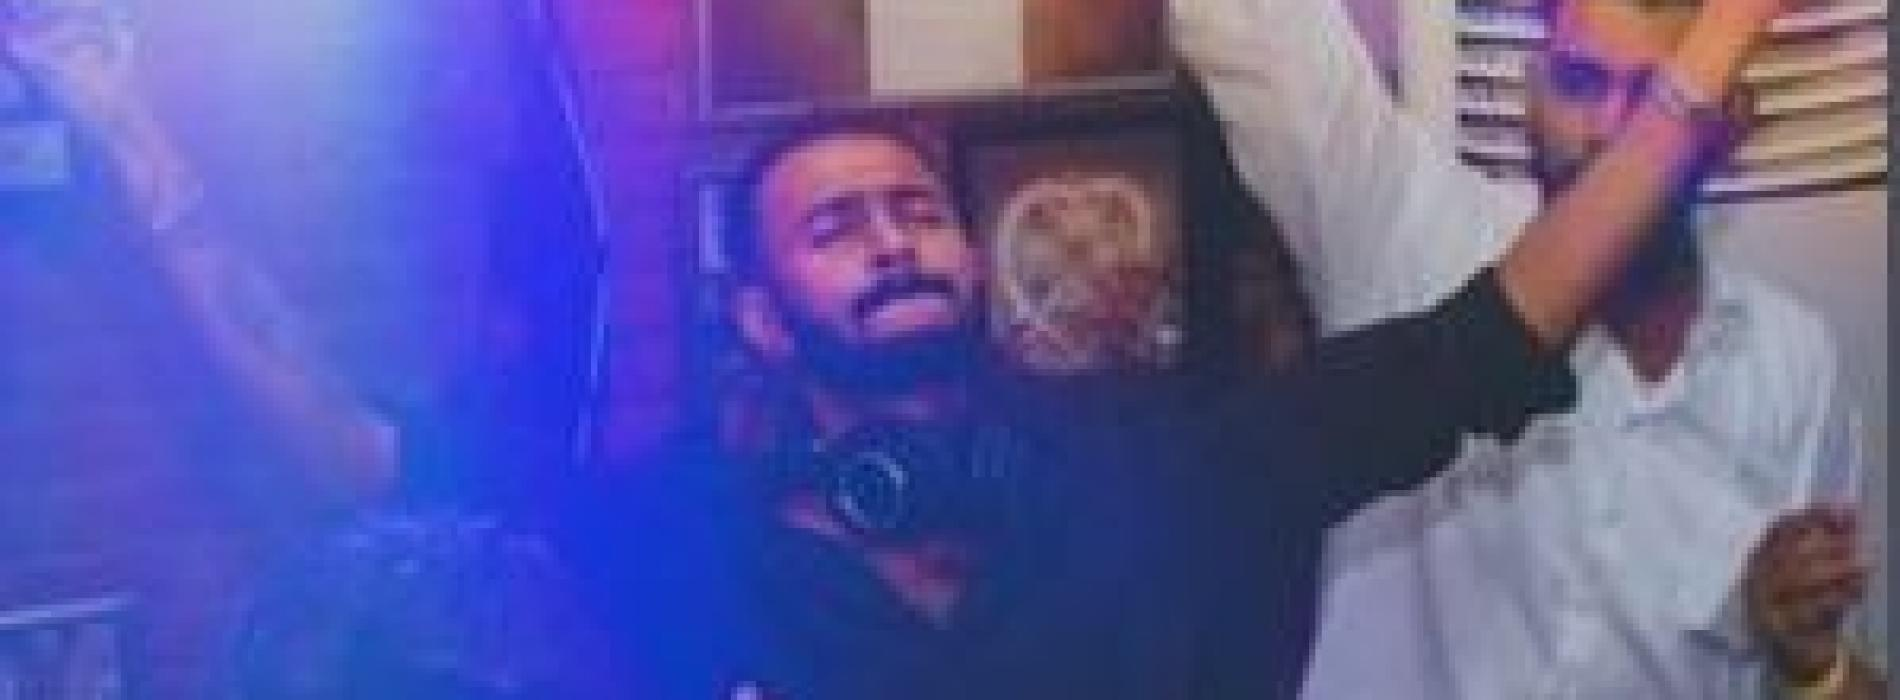 Praveen Jay – Live at SERENITY | Sundown Sessions (06.09.2020)